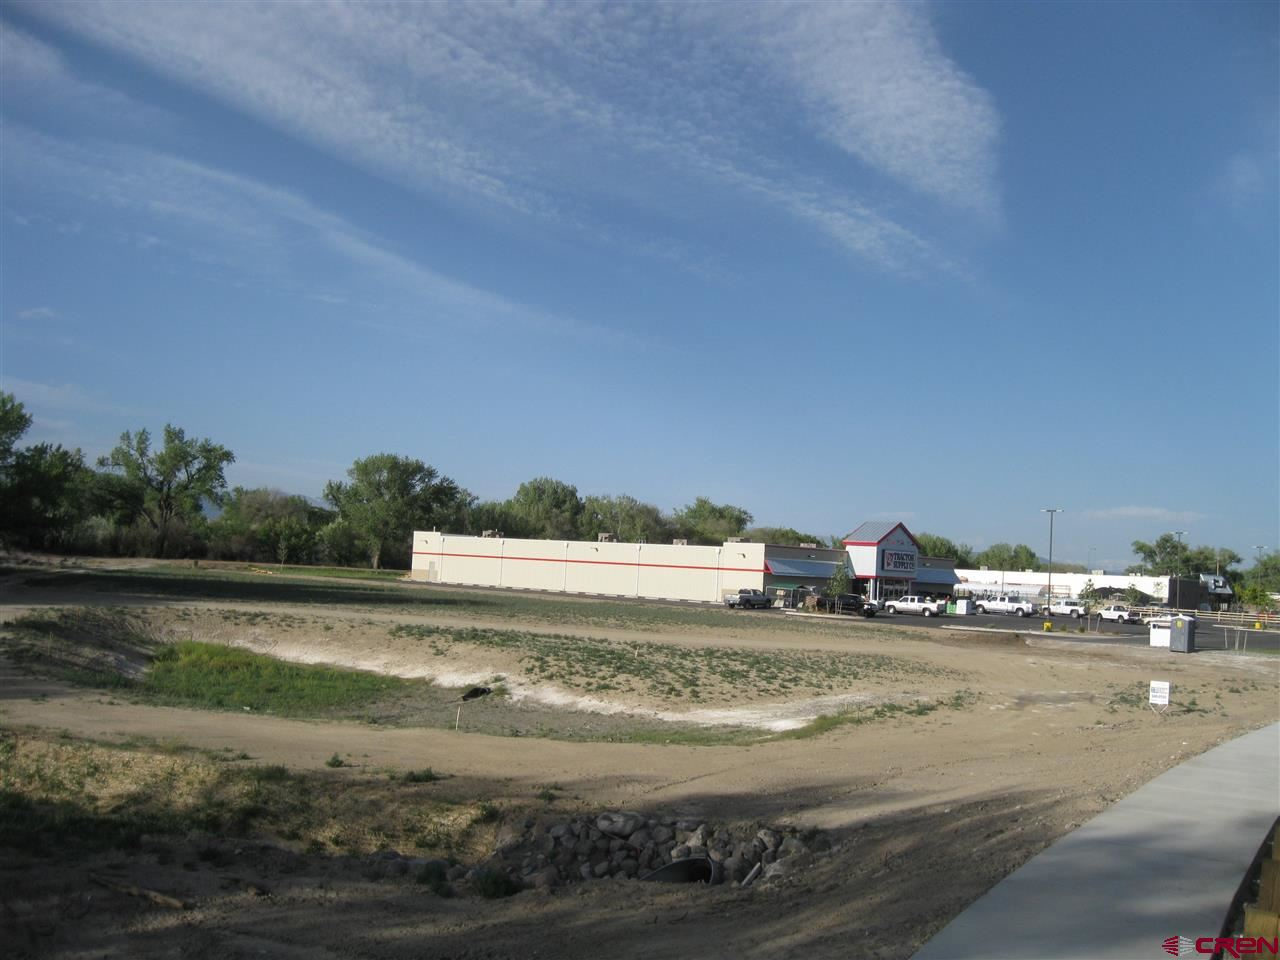 Excellent Development Potential On Bypass! Prime business frontage on new bypass boosts visibility, access, and traffic count! 1.93-acre (MOL) parcel of vacant commercial land. Zoned B-2 within City of Delta. Located in large commercial hub near Bill Heddles Recreation Center and Confluence Park. Also located just off Highway 50. Utilities available. Excellent opportunity to develop. B-2 allows for multi-family housing. Possible owner carry to qualified buyer!   Property has a FEMA Flood Certification and is also Opportunity Zone Designated.